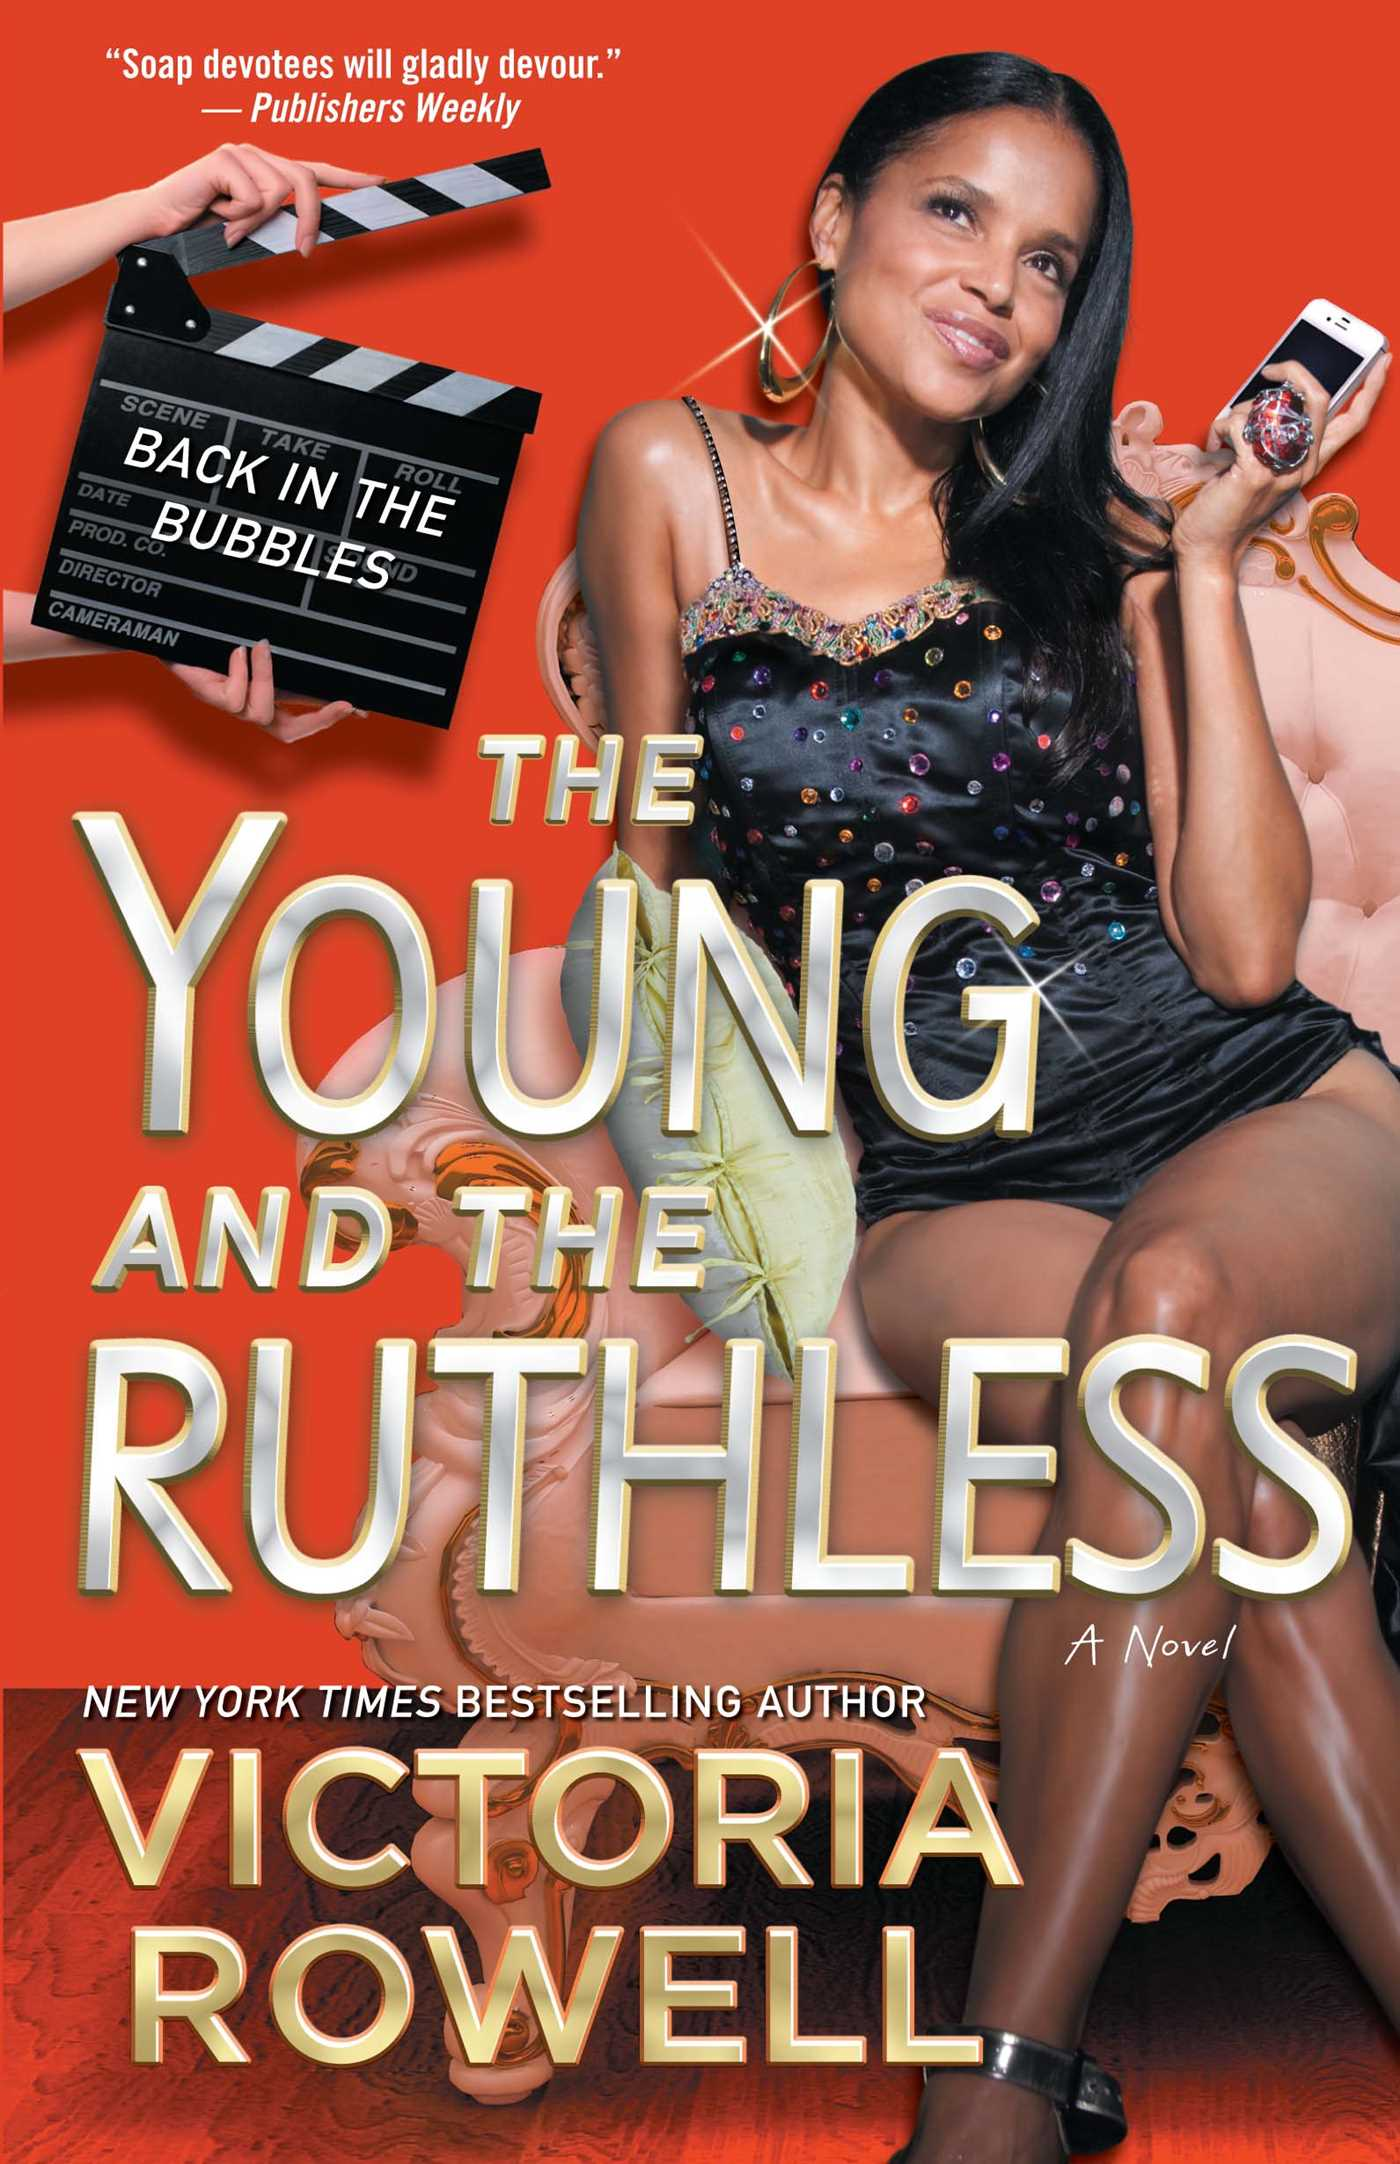 Young-and-the-ruthless-9781451643831_hr